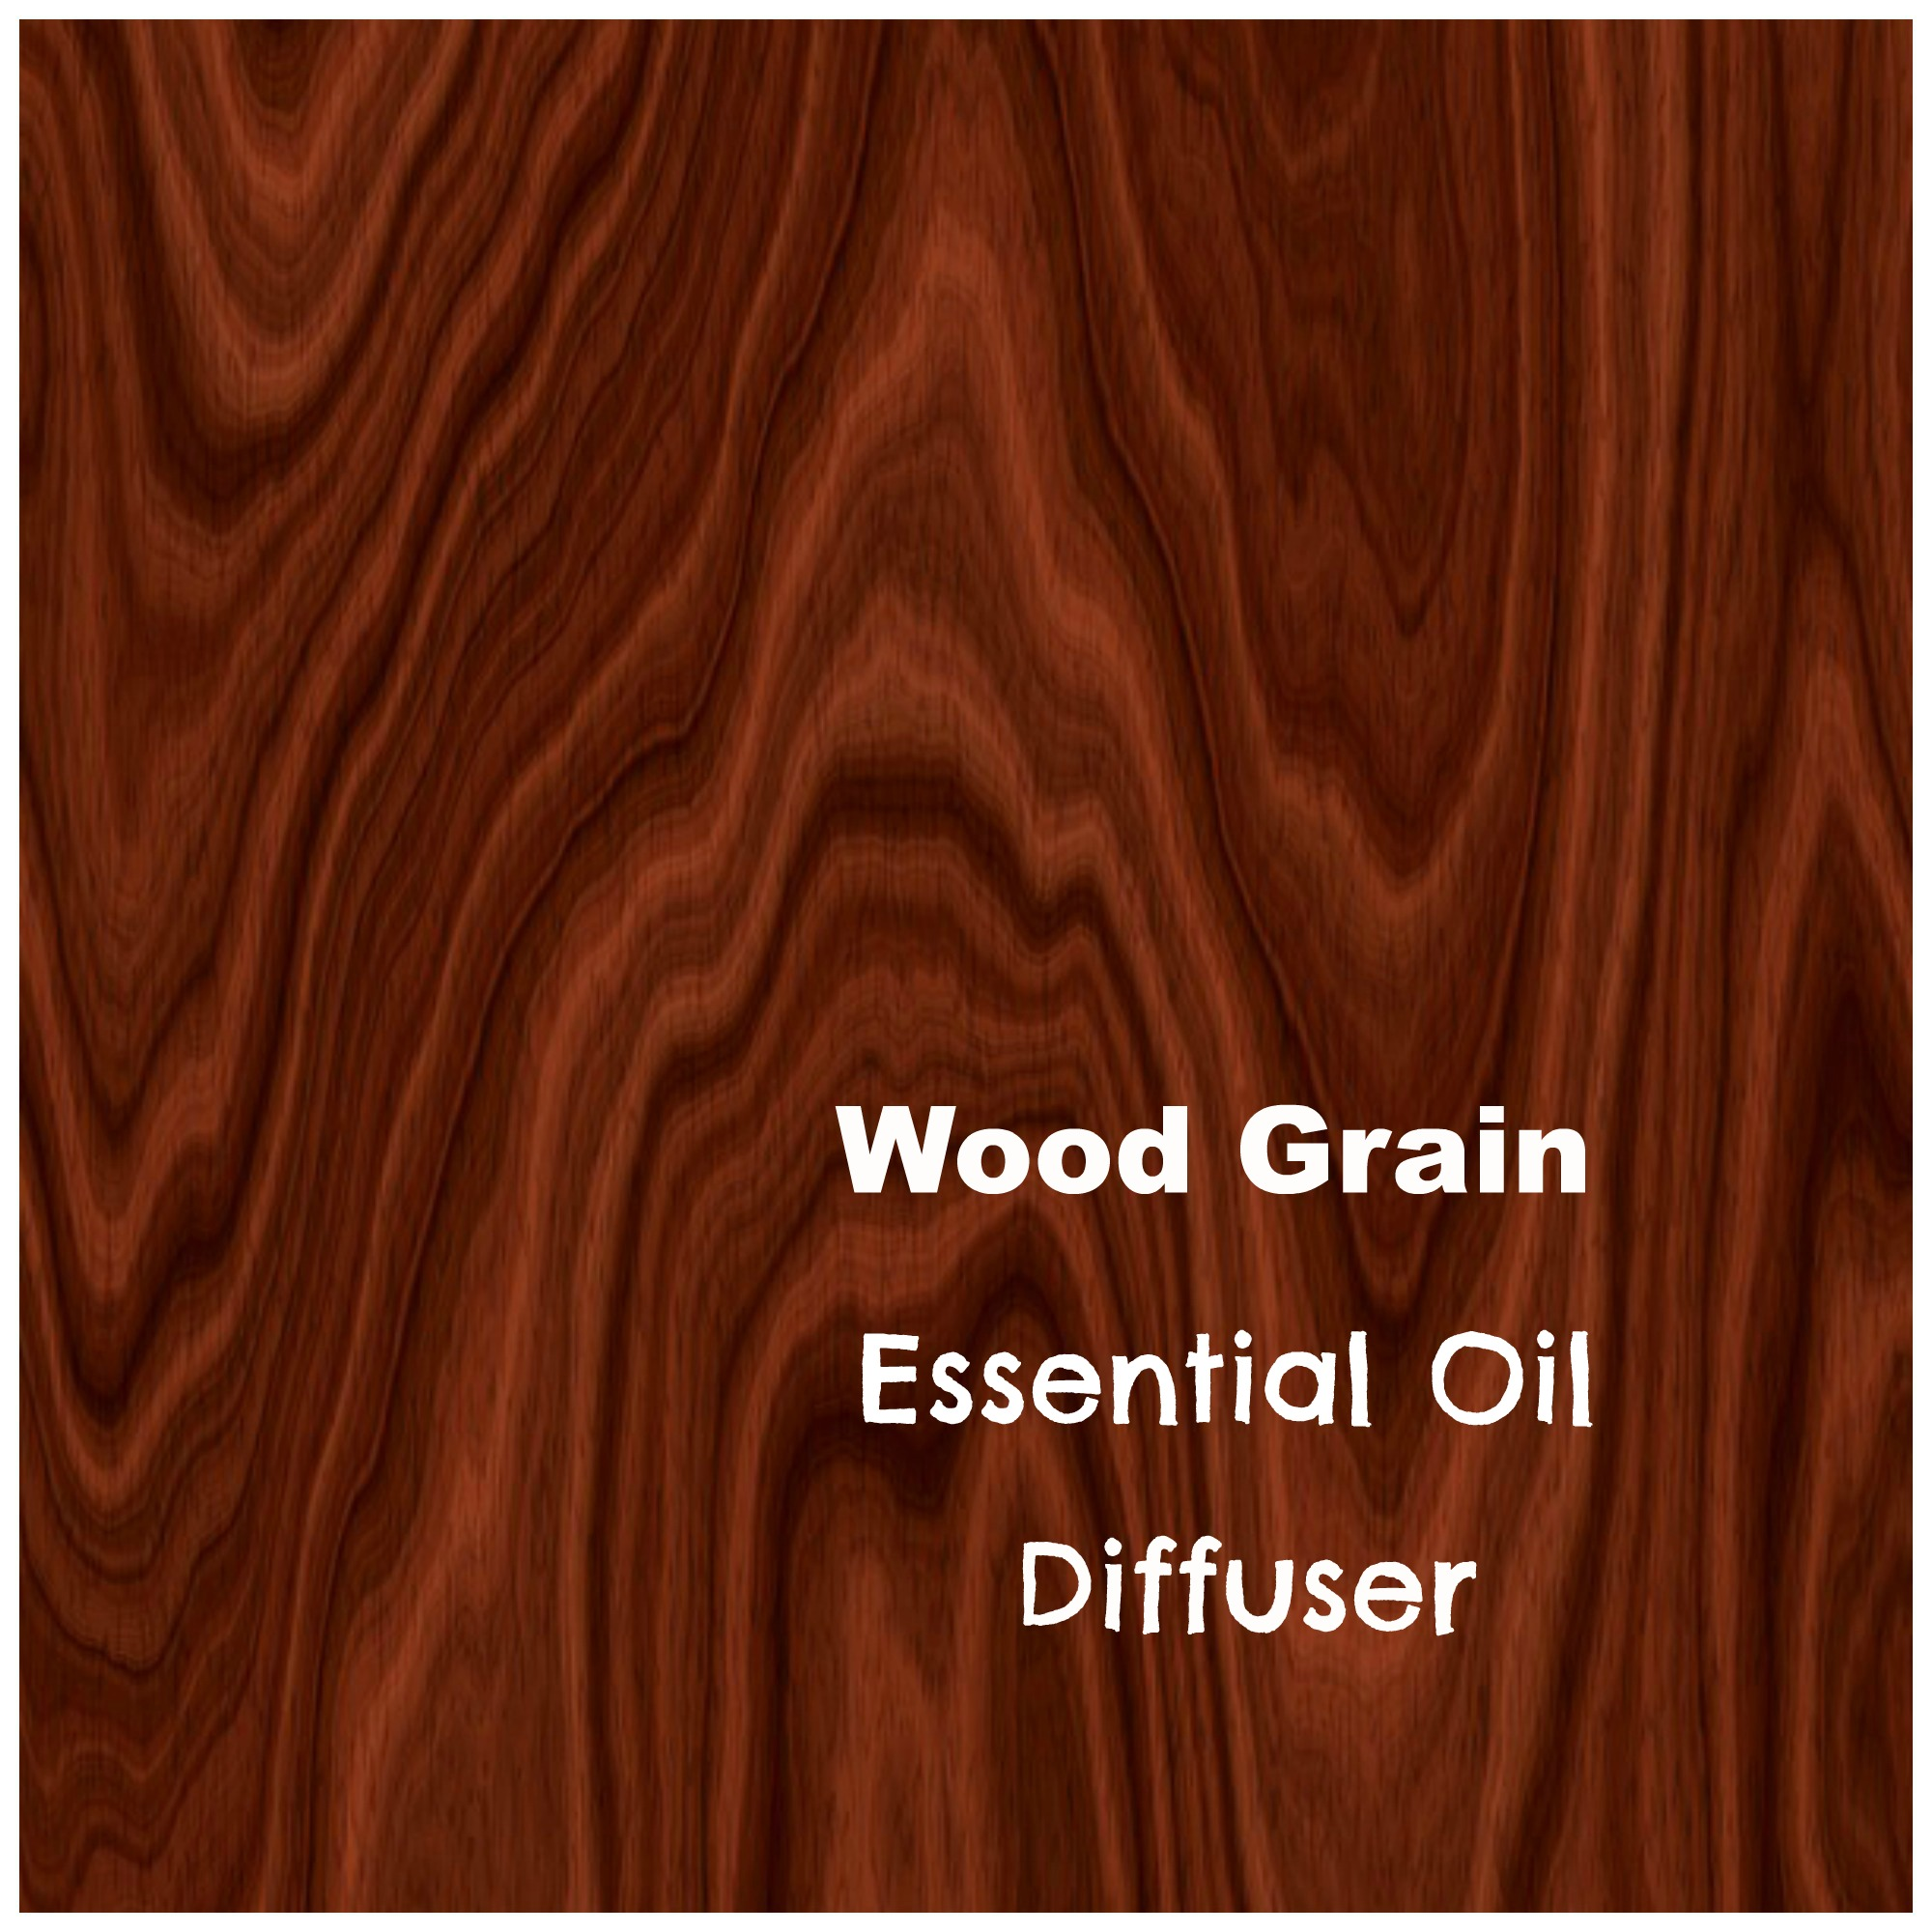 now wood grain diffuser instructions